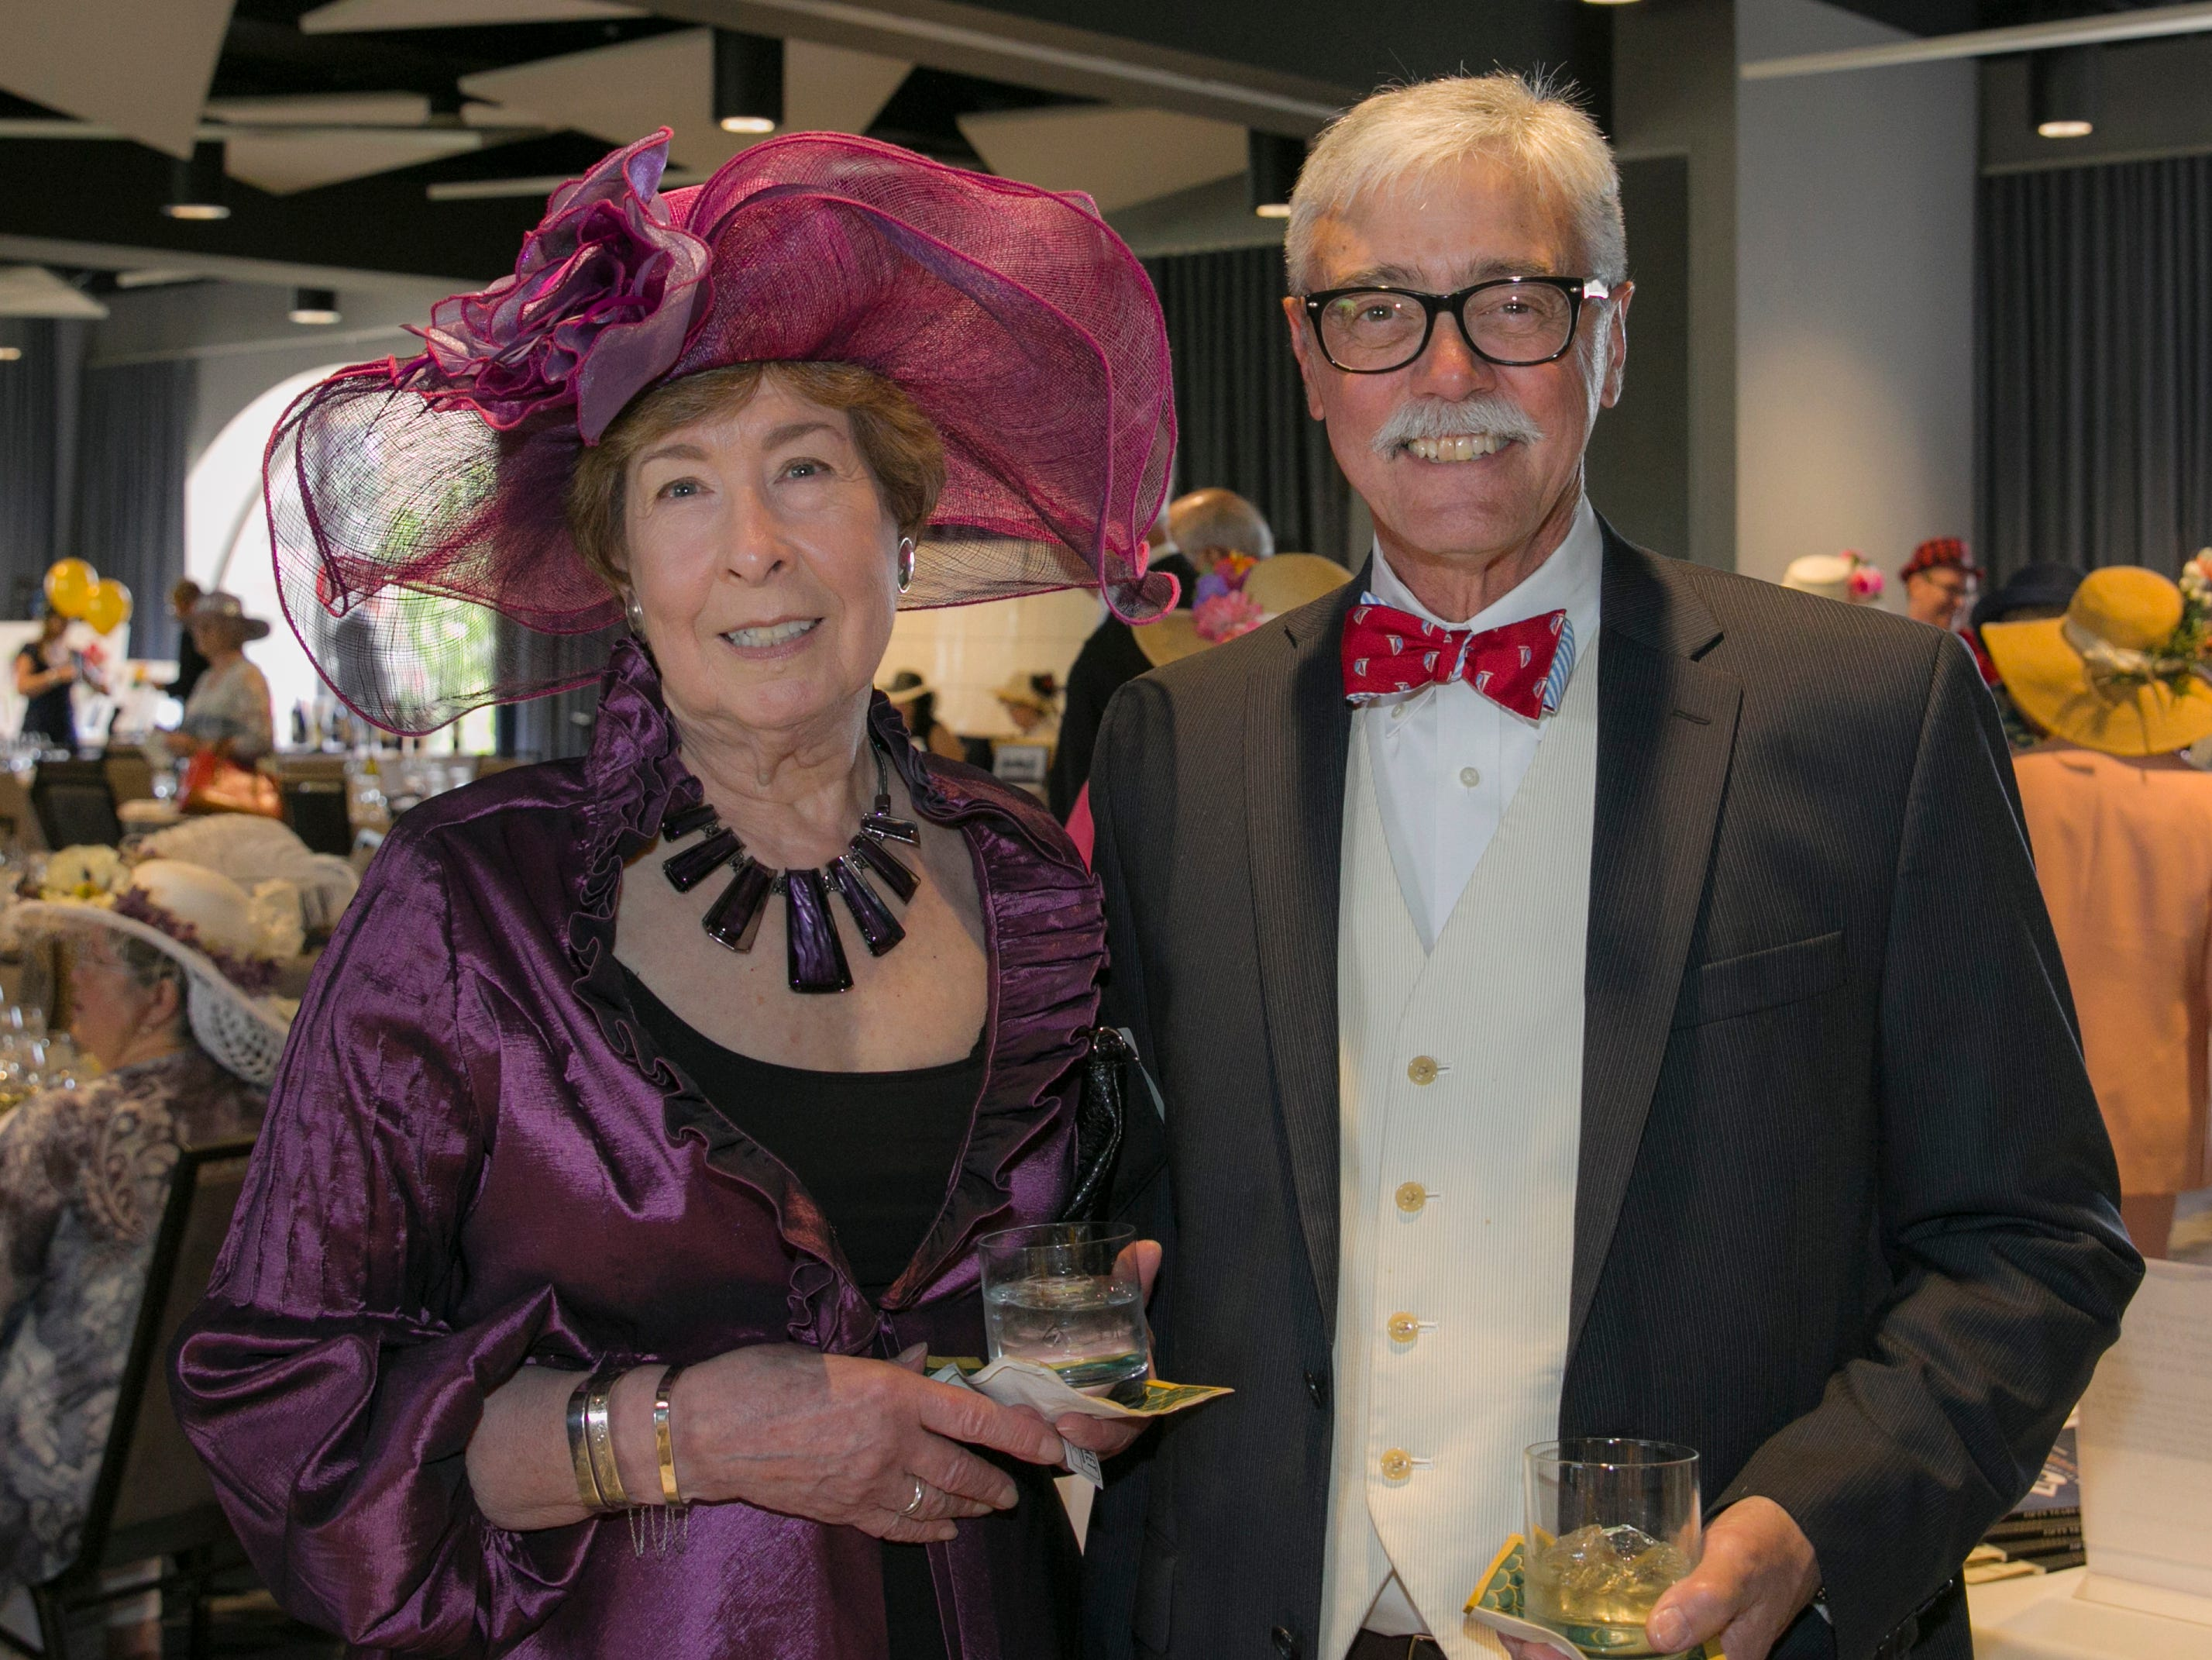 Robbi Whipp and Richard Breitling during the Derby Day fundraiser for the Reno Chamber Orchestra at the Renaissance Reno on Saturday, May 4, 2019.